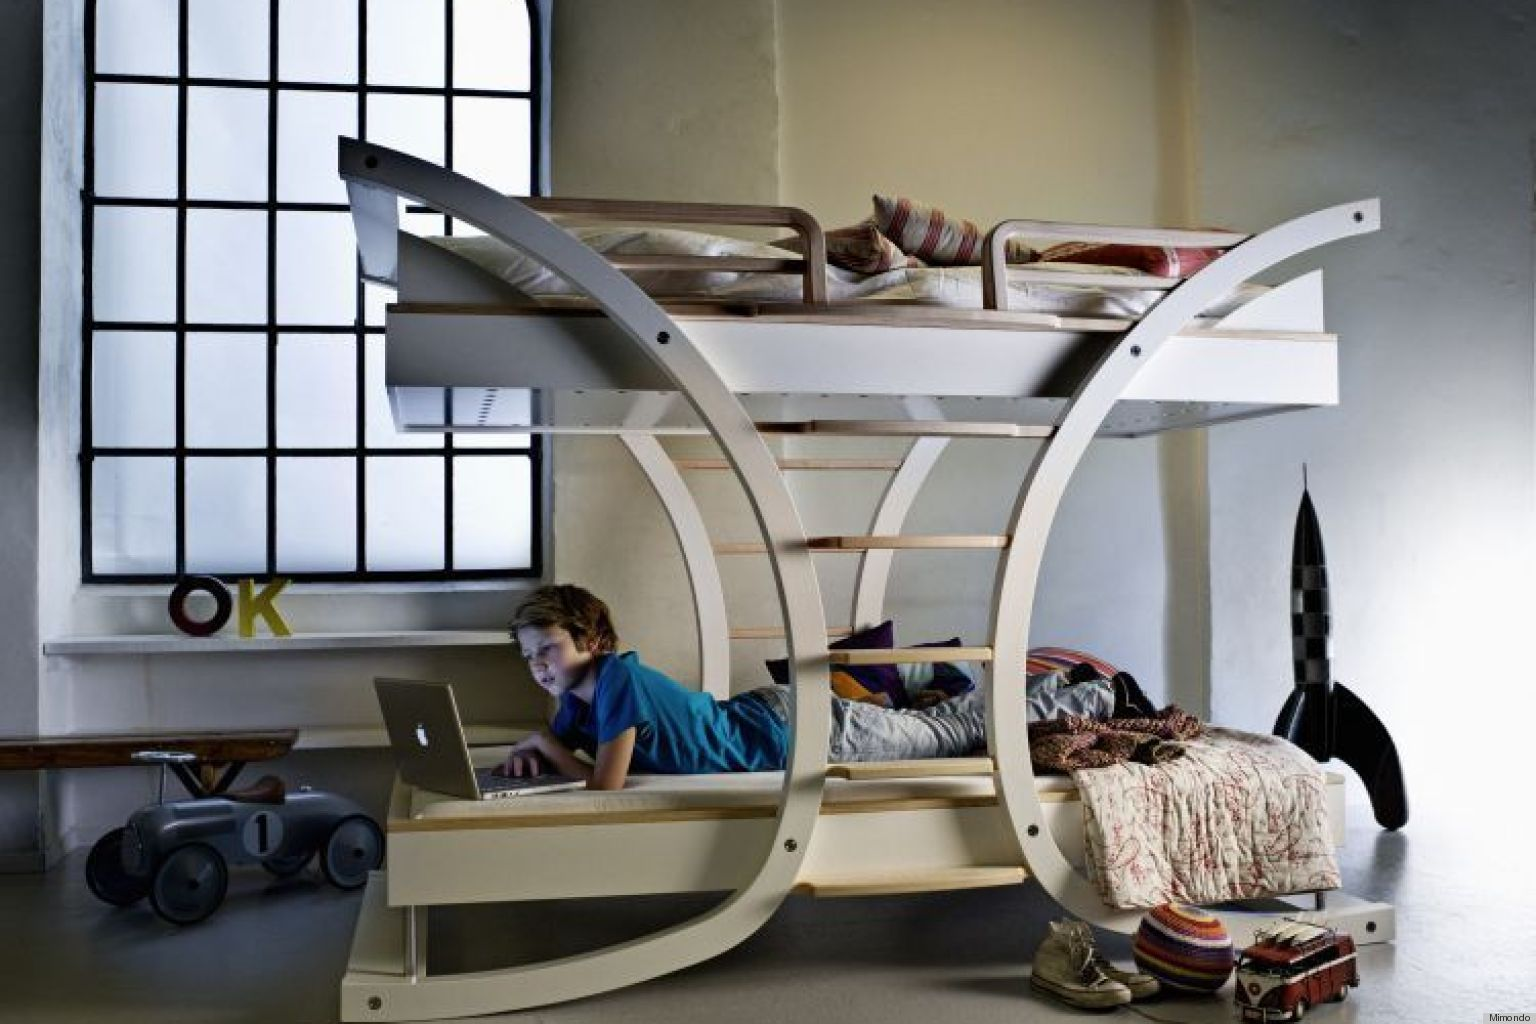 Cool Bunk Beds That We Wish We Had Growing Up (PHOTOS) | HuffPost